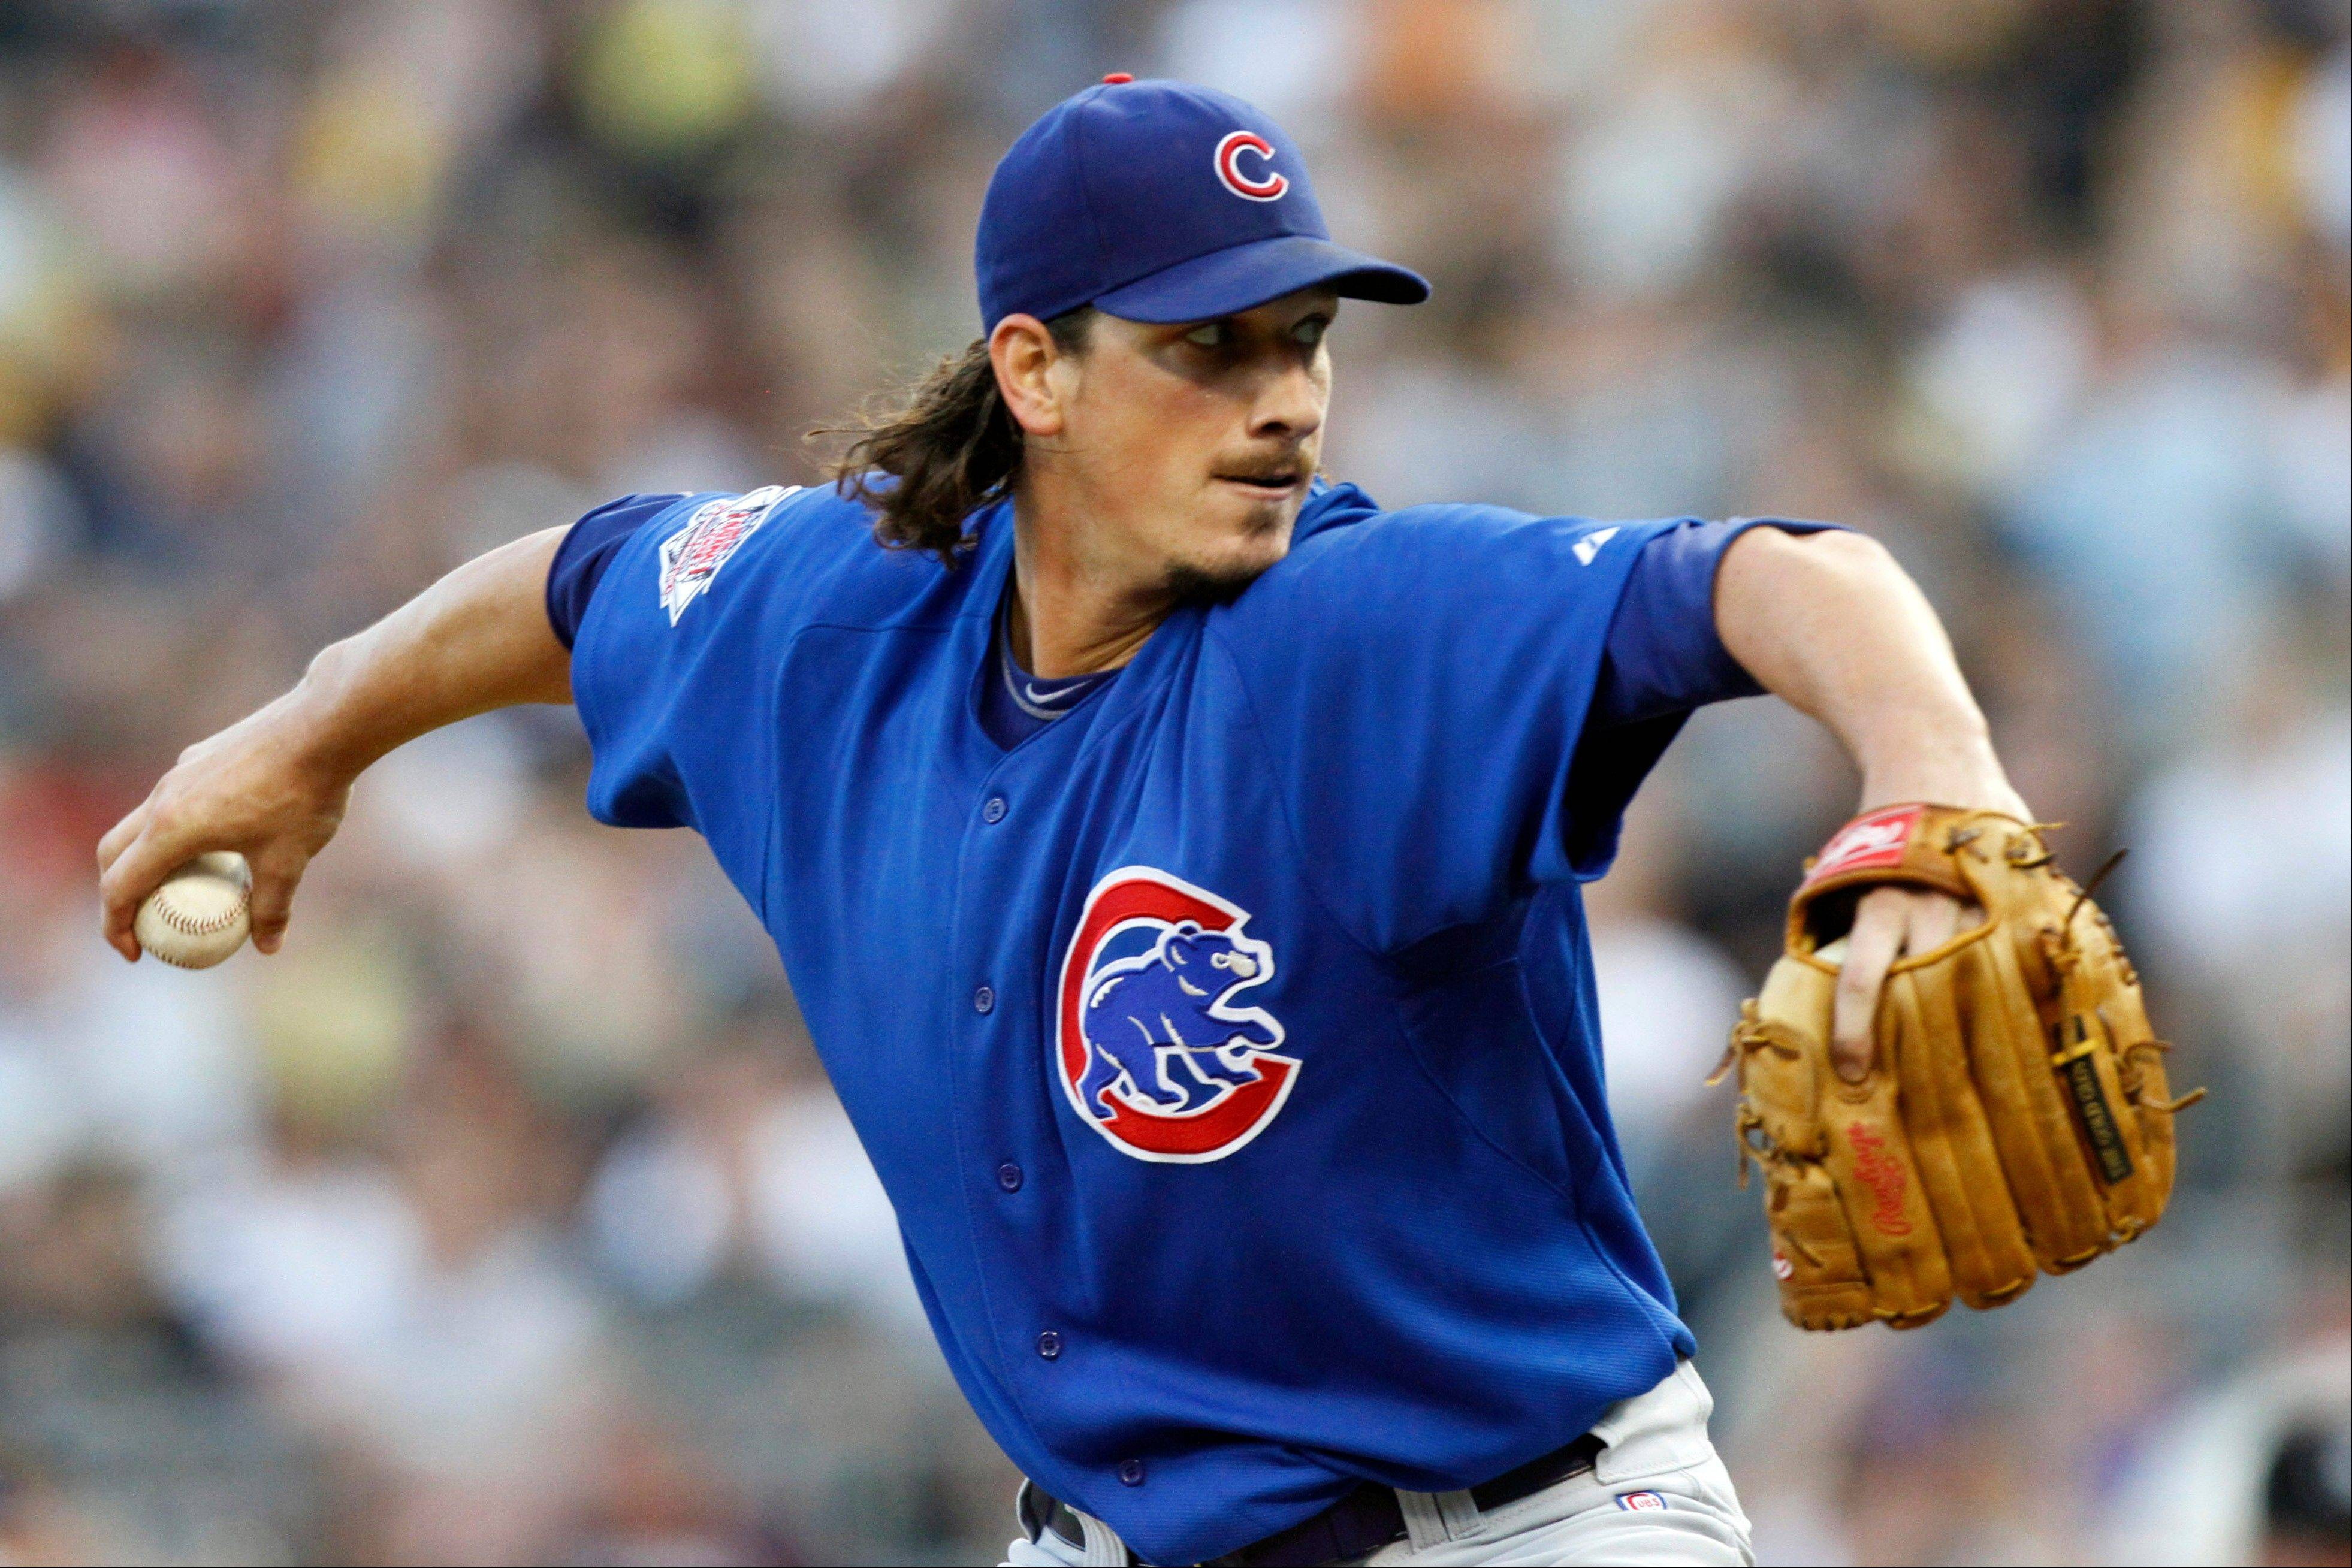 Cubs starting pitcher Jeff Samardzija throws Monday against the Pittsburgh Pirates in the third inning at PNC Park.